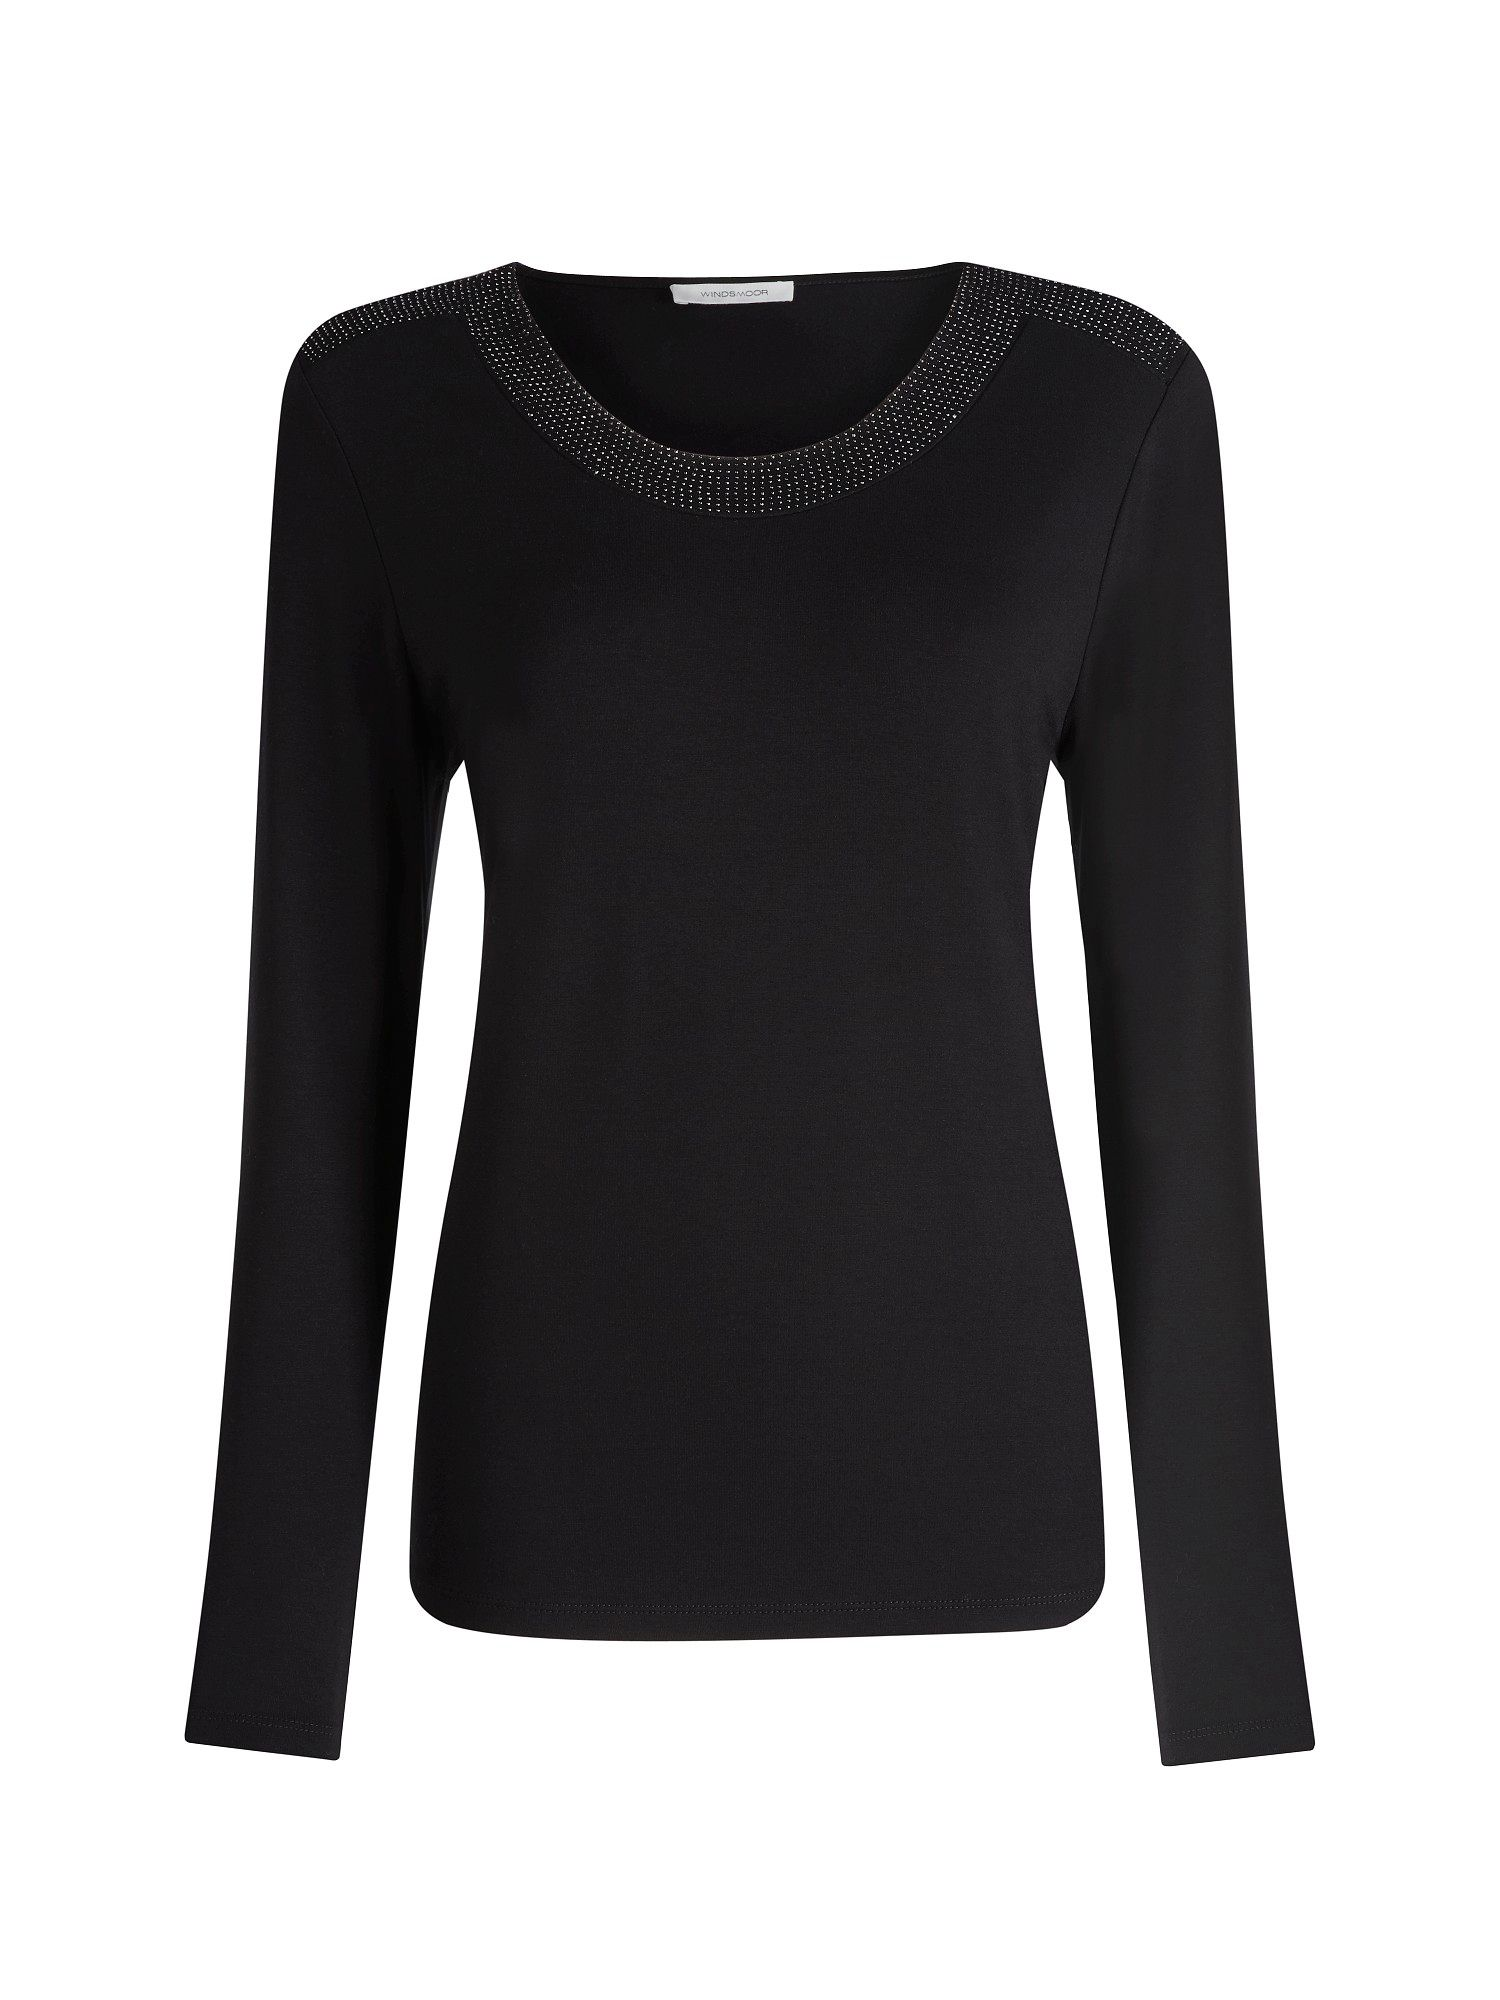 Black sparkle jersey top